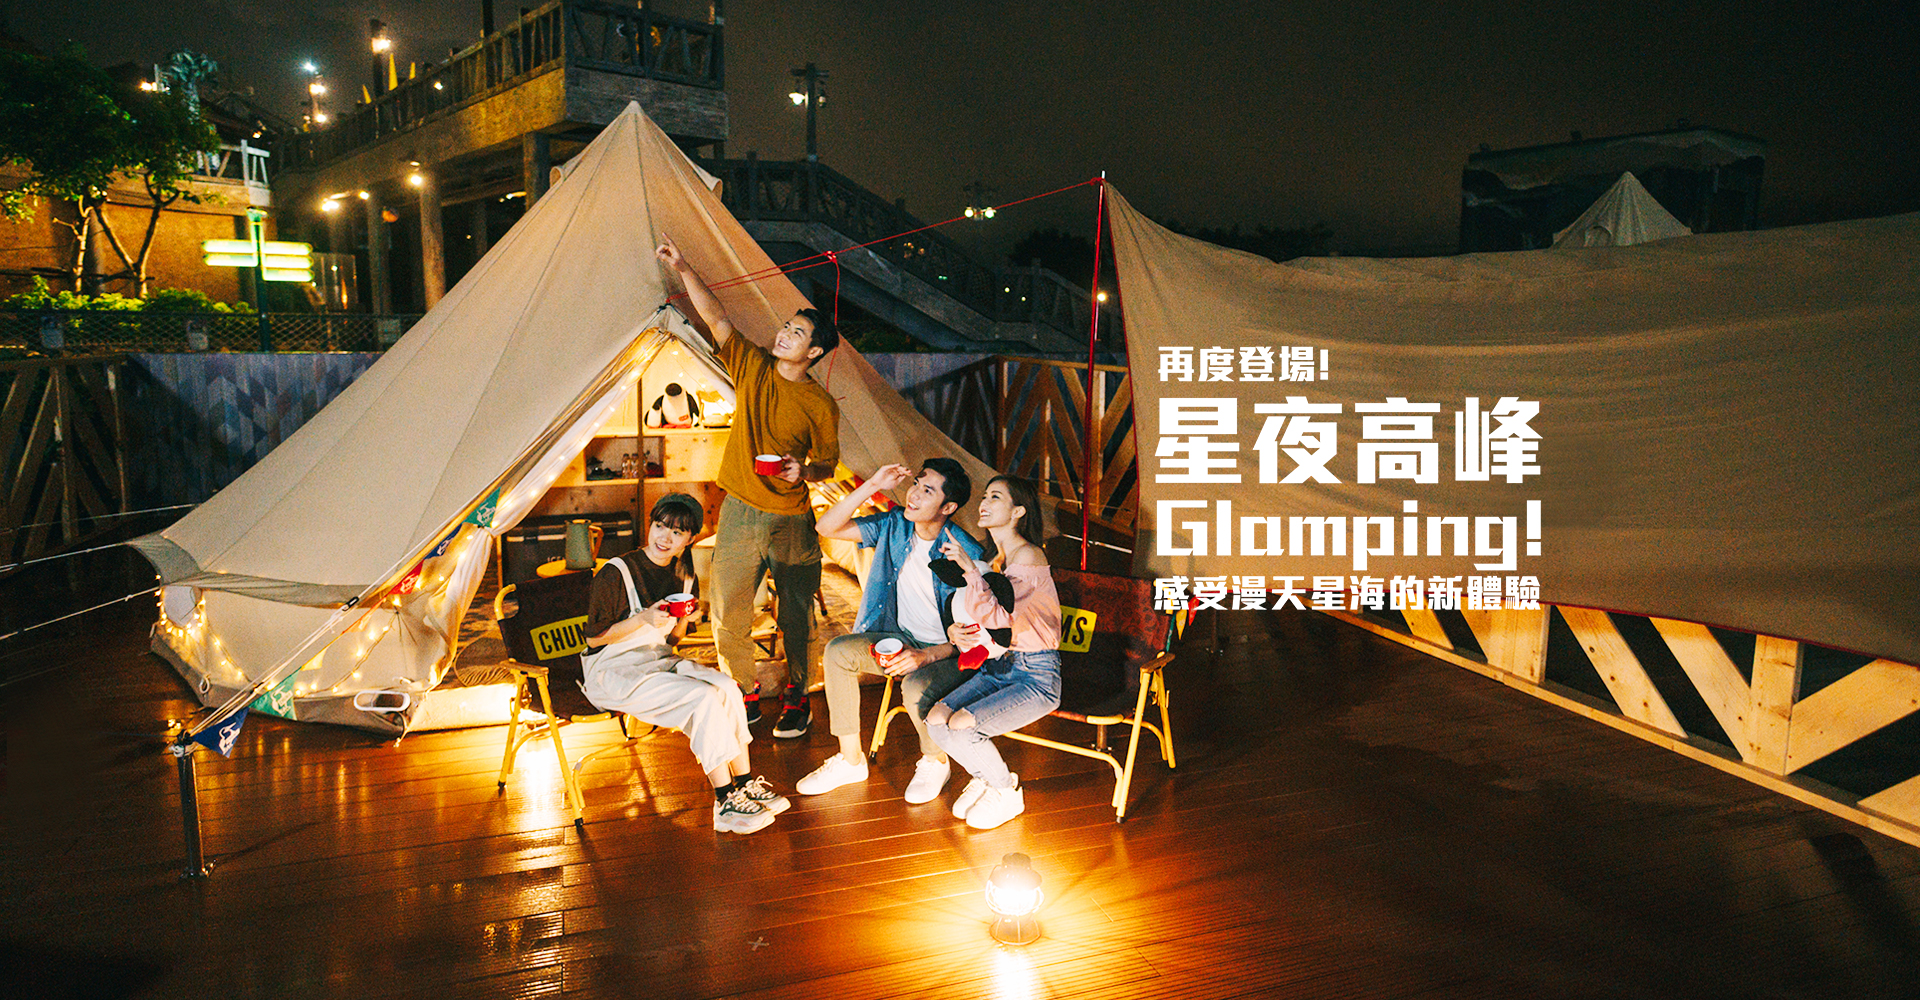 https://media.oceanpark.com.hk/files/s3fs-public/glamping_inside_desktop_tc.jpg